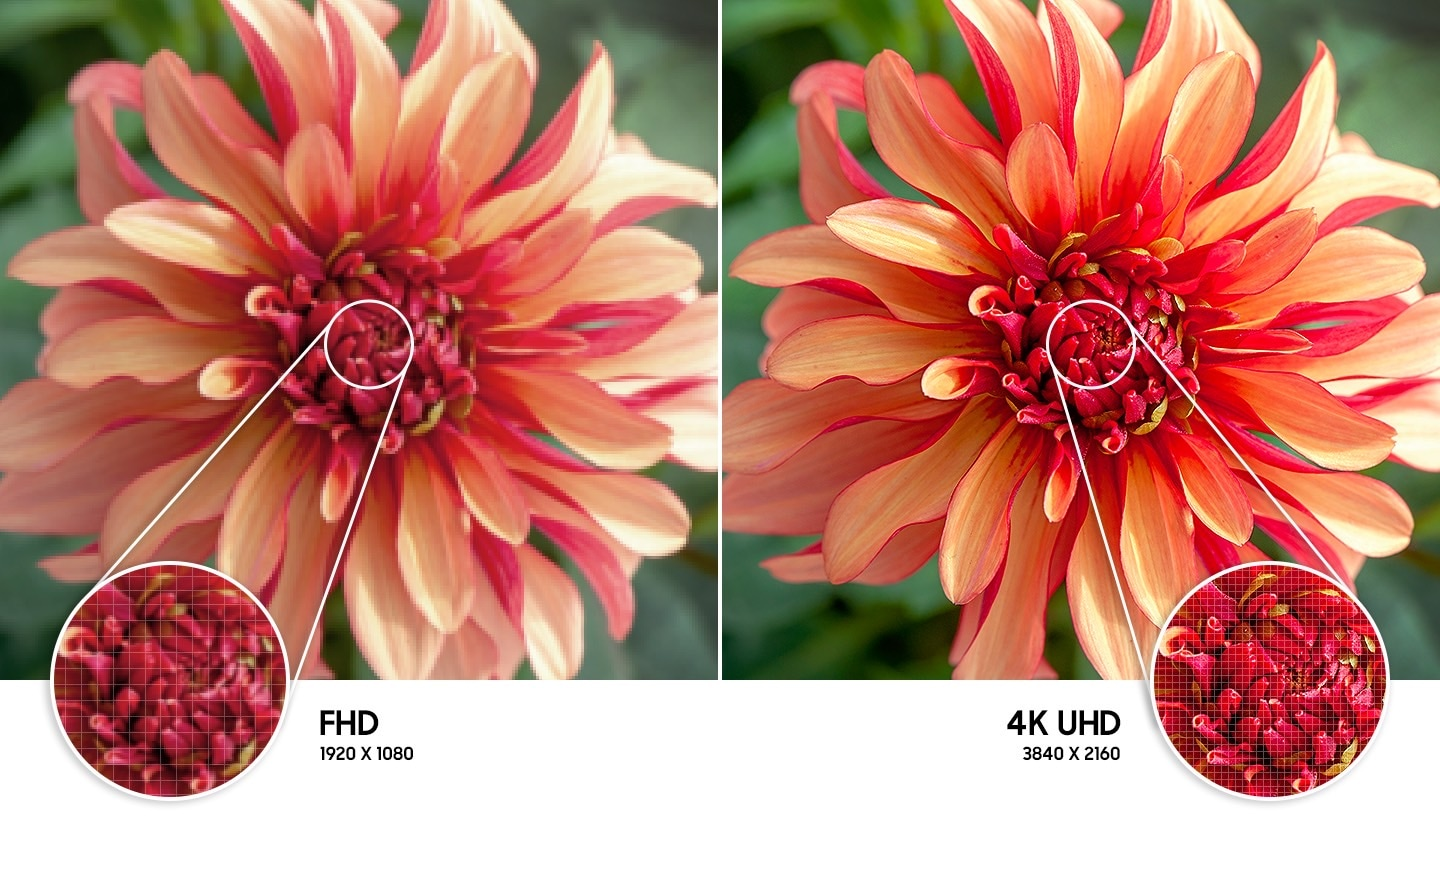 The flower image on the right compared to the left shows higher quality picture resolution created by 4K UHD technology.